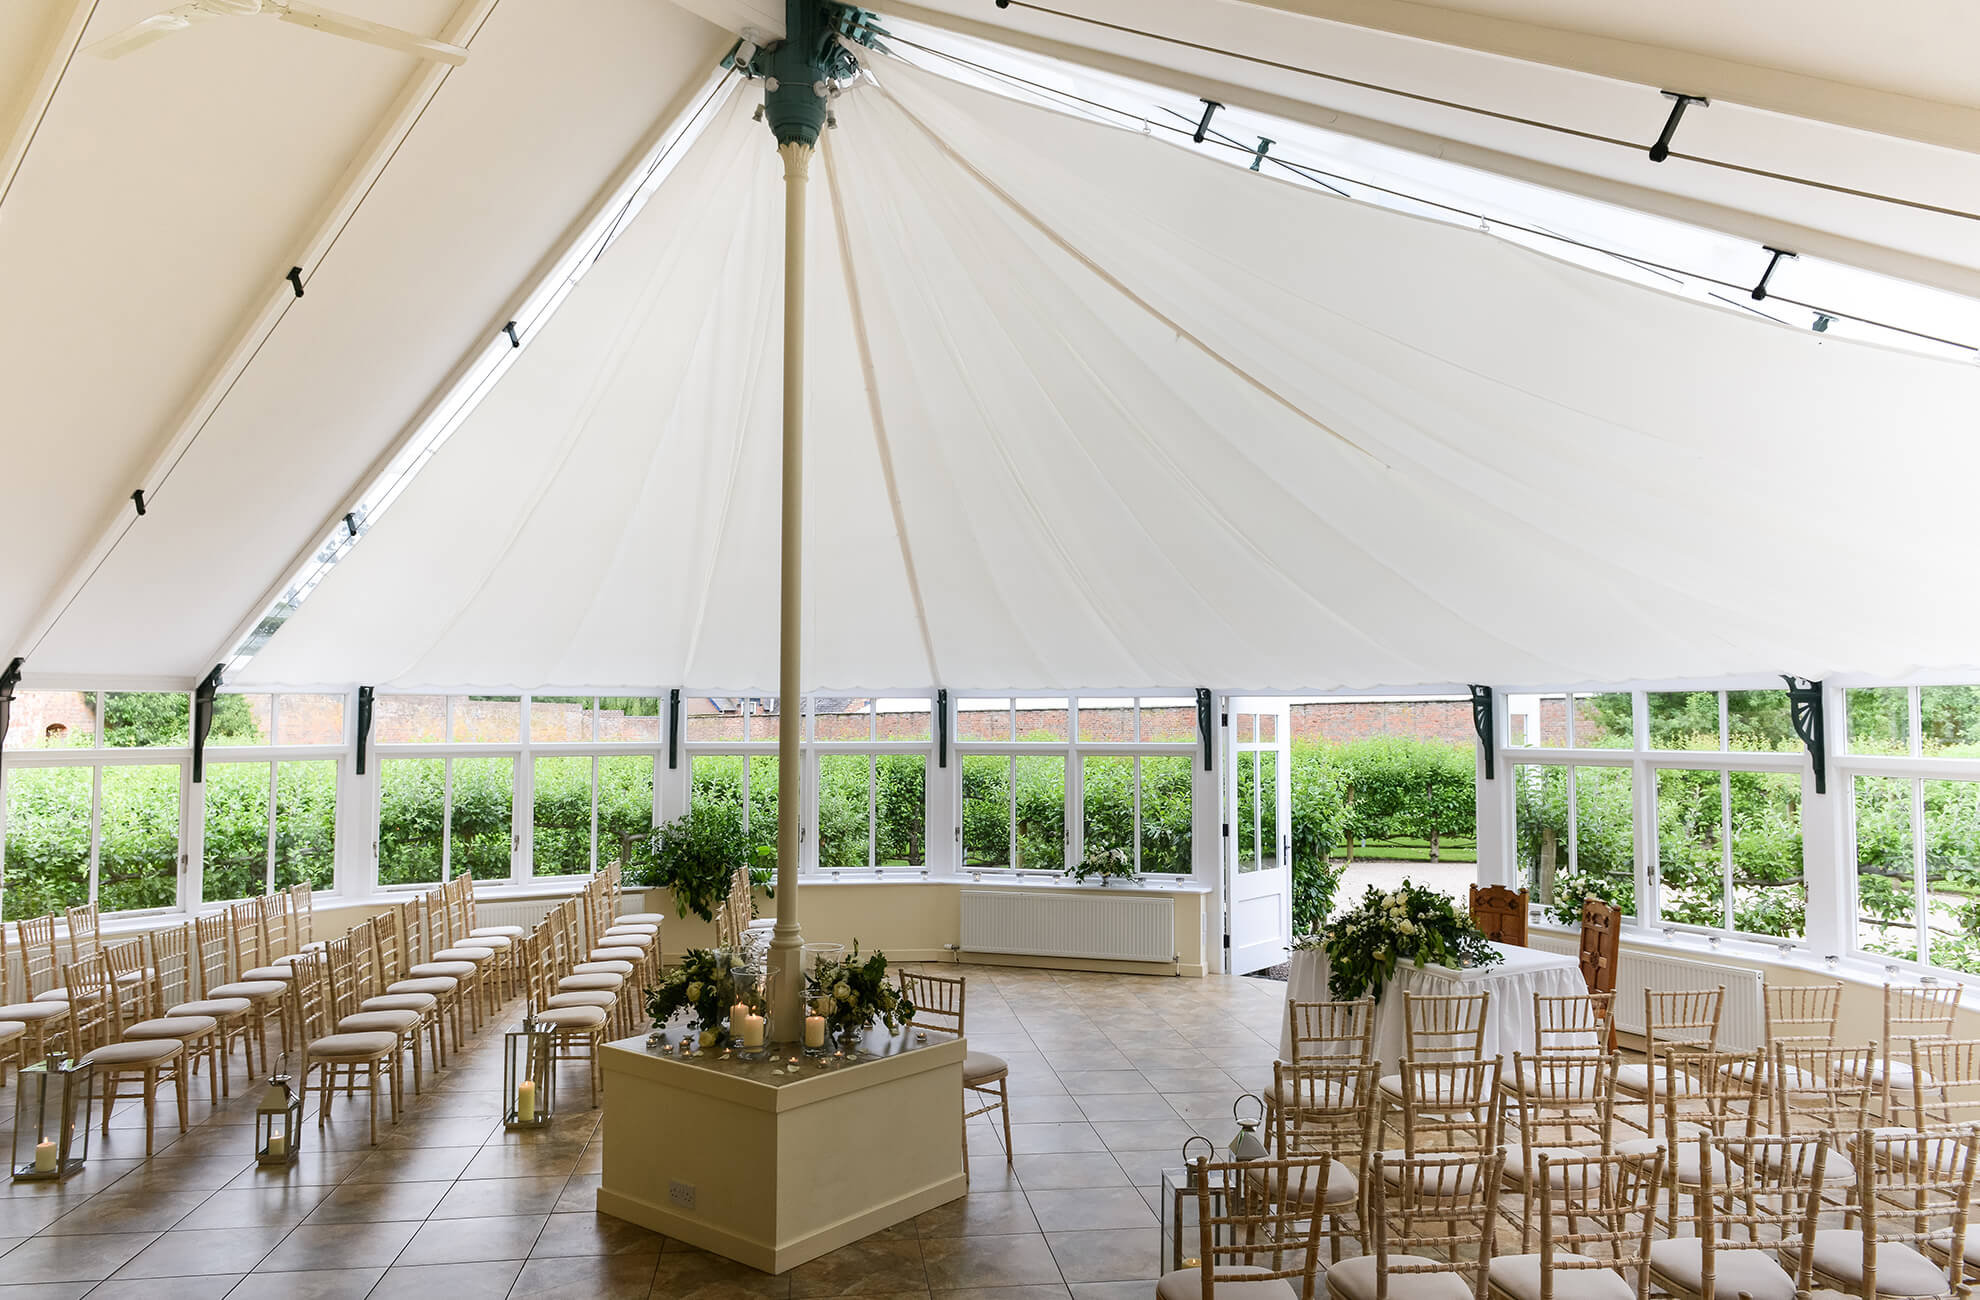 The Glasshouse at Combermere Abbey is decorated with florals and lanterns for a beautiful wedding ceremony